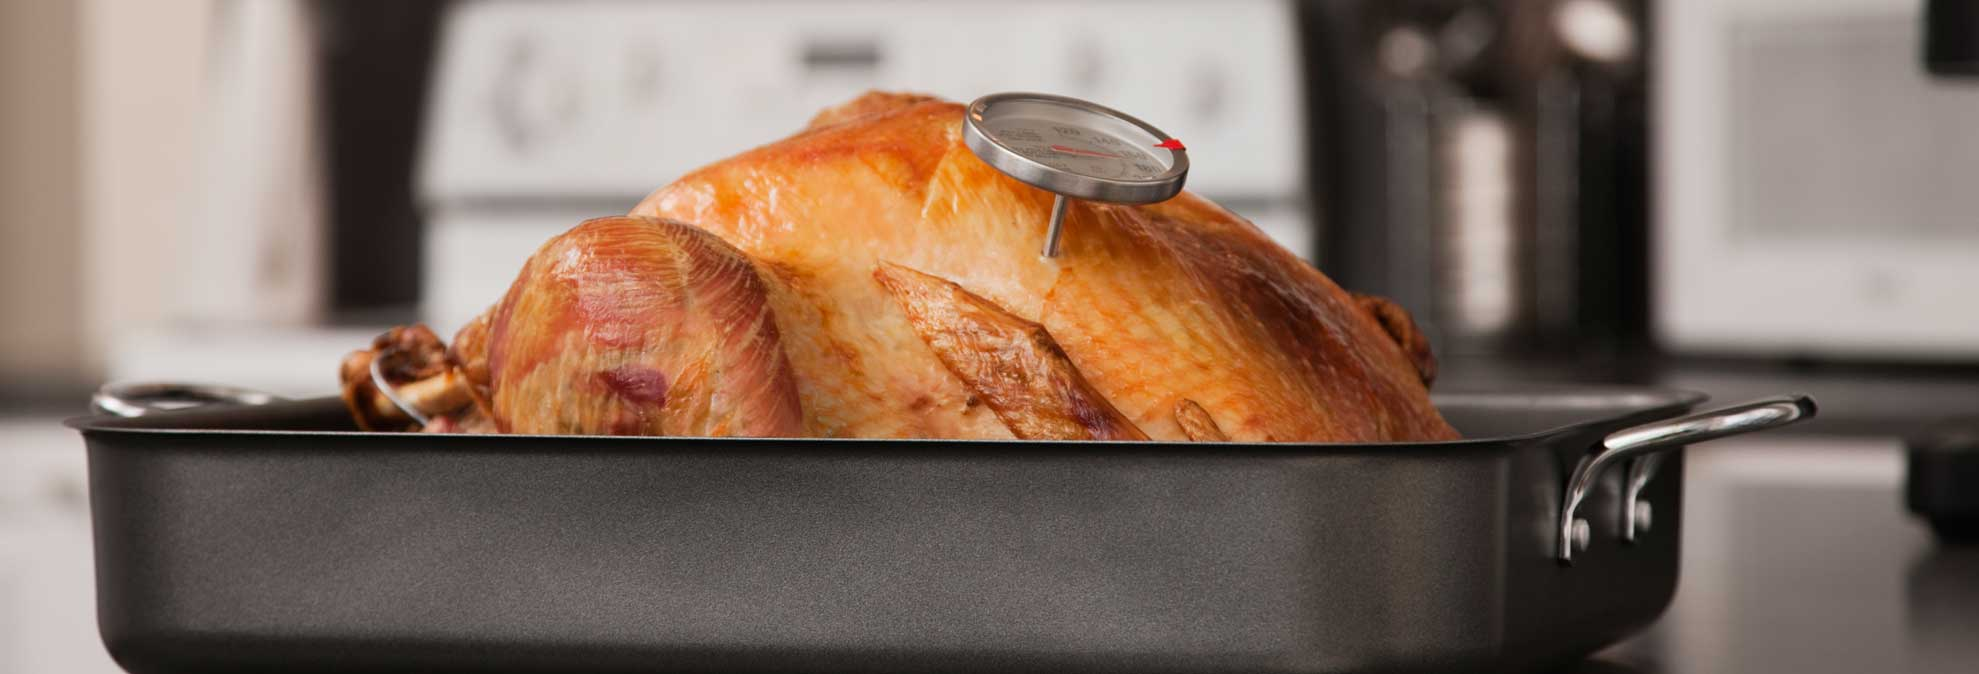 Meat Thermometer Or Pop Up Turkey Timer Consumer Reports